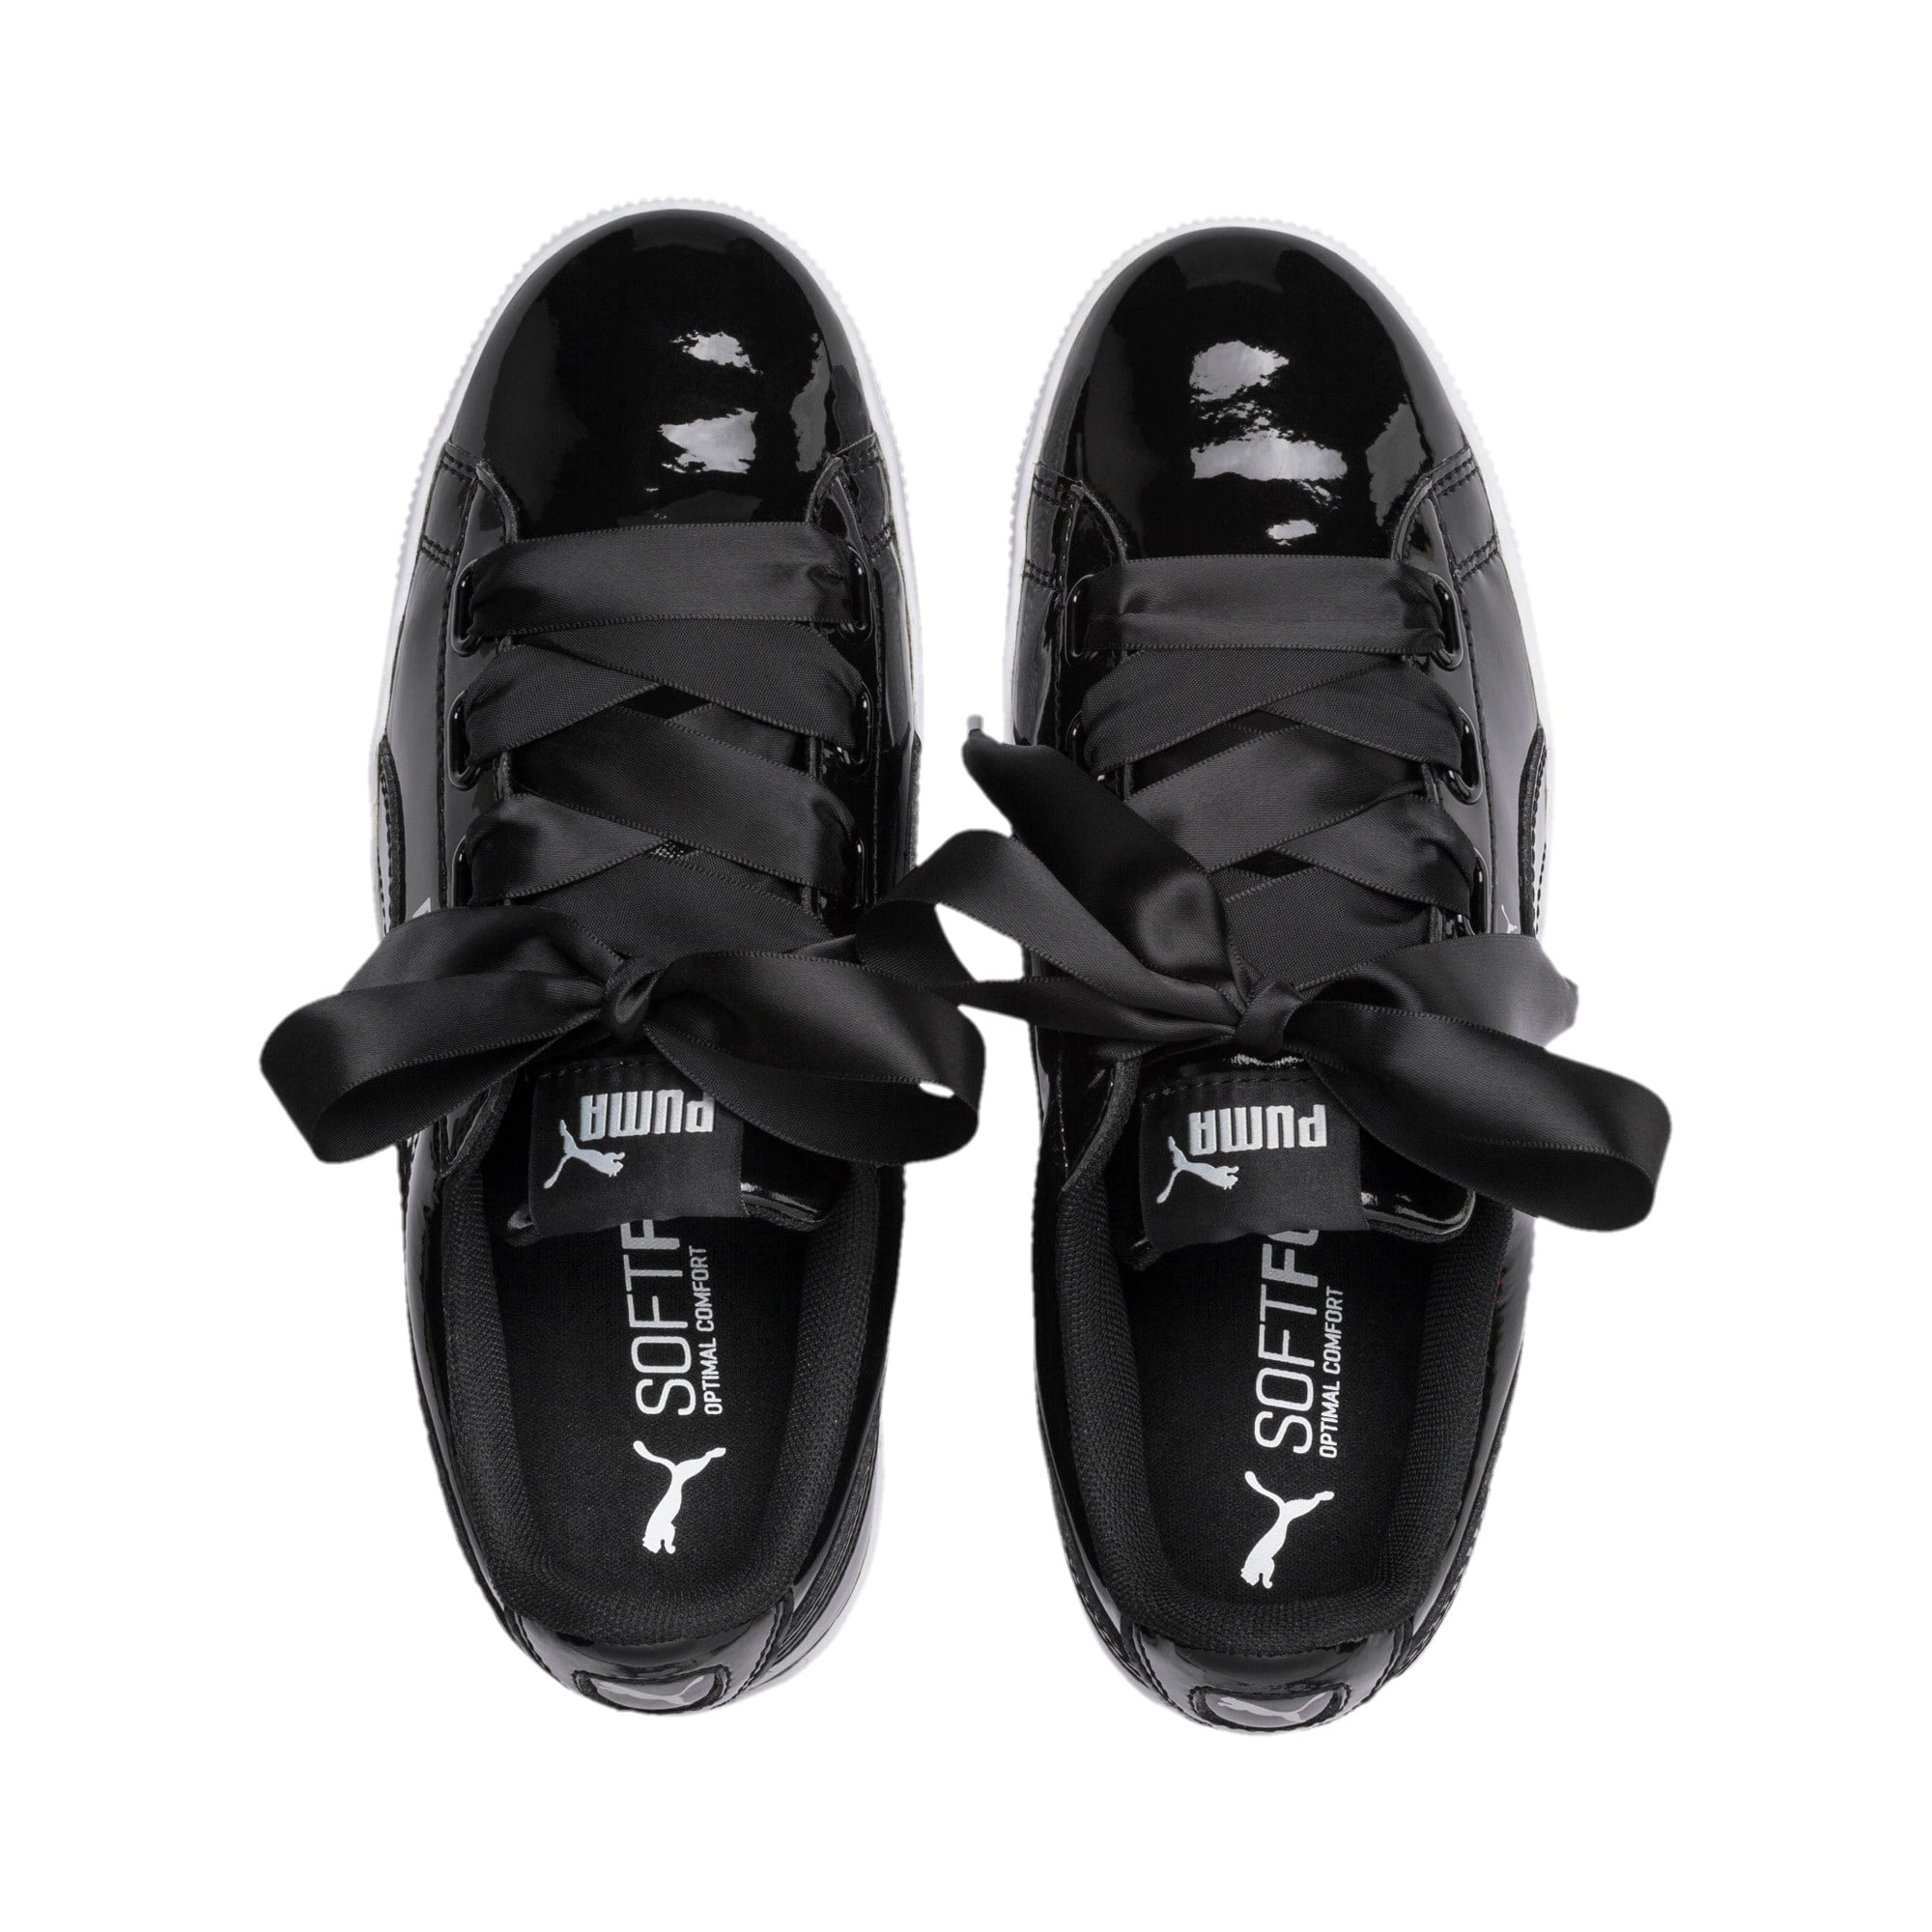 Thumbnail 6 of Vikky Platform Ribbon Patent Girls' Trainers, Puma Black-Puma Black, medium